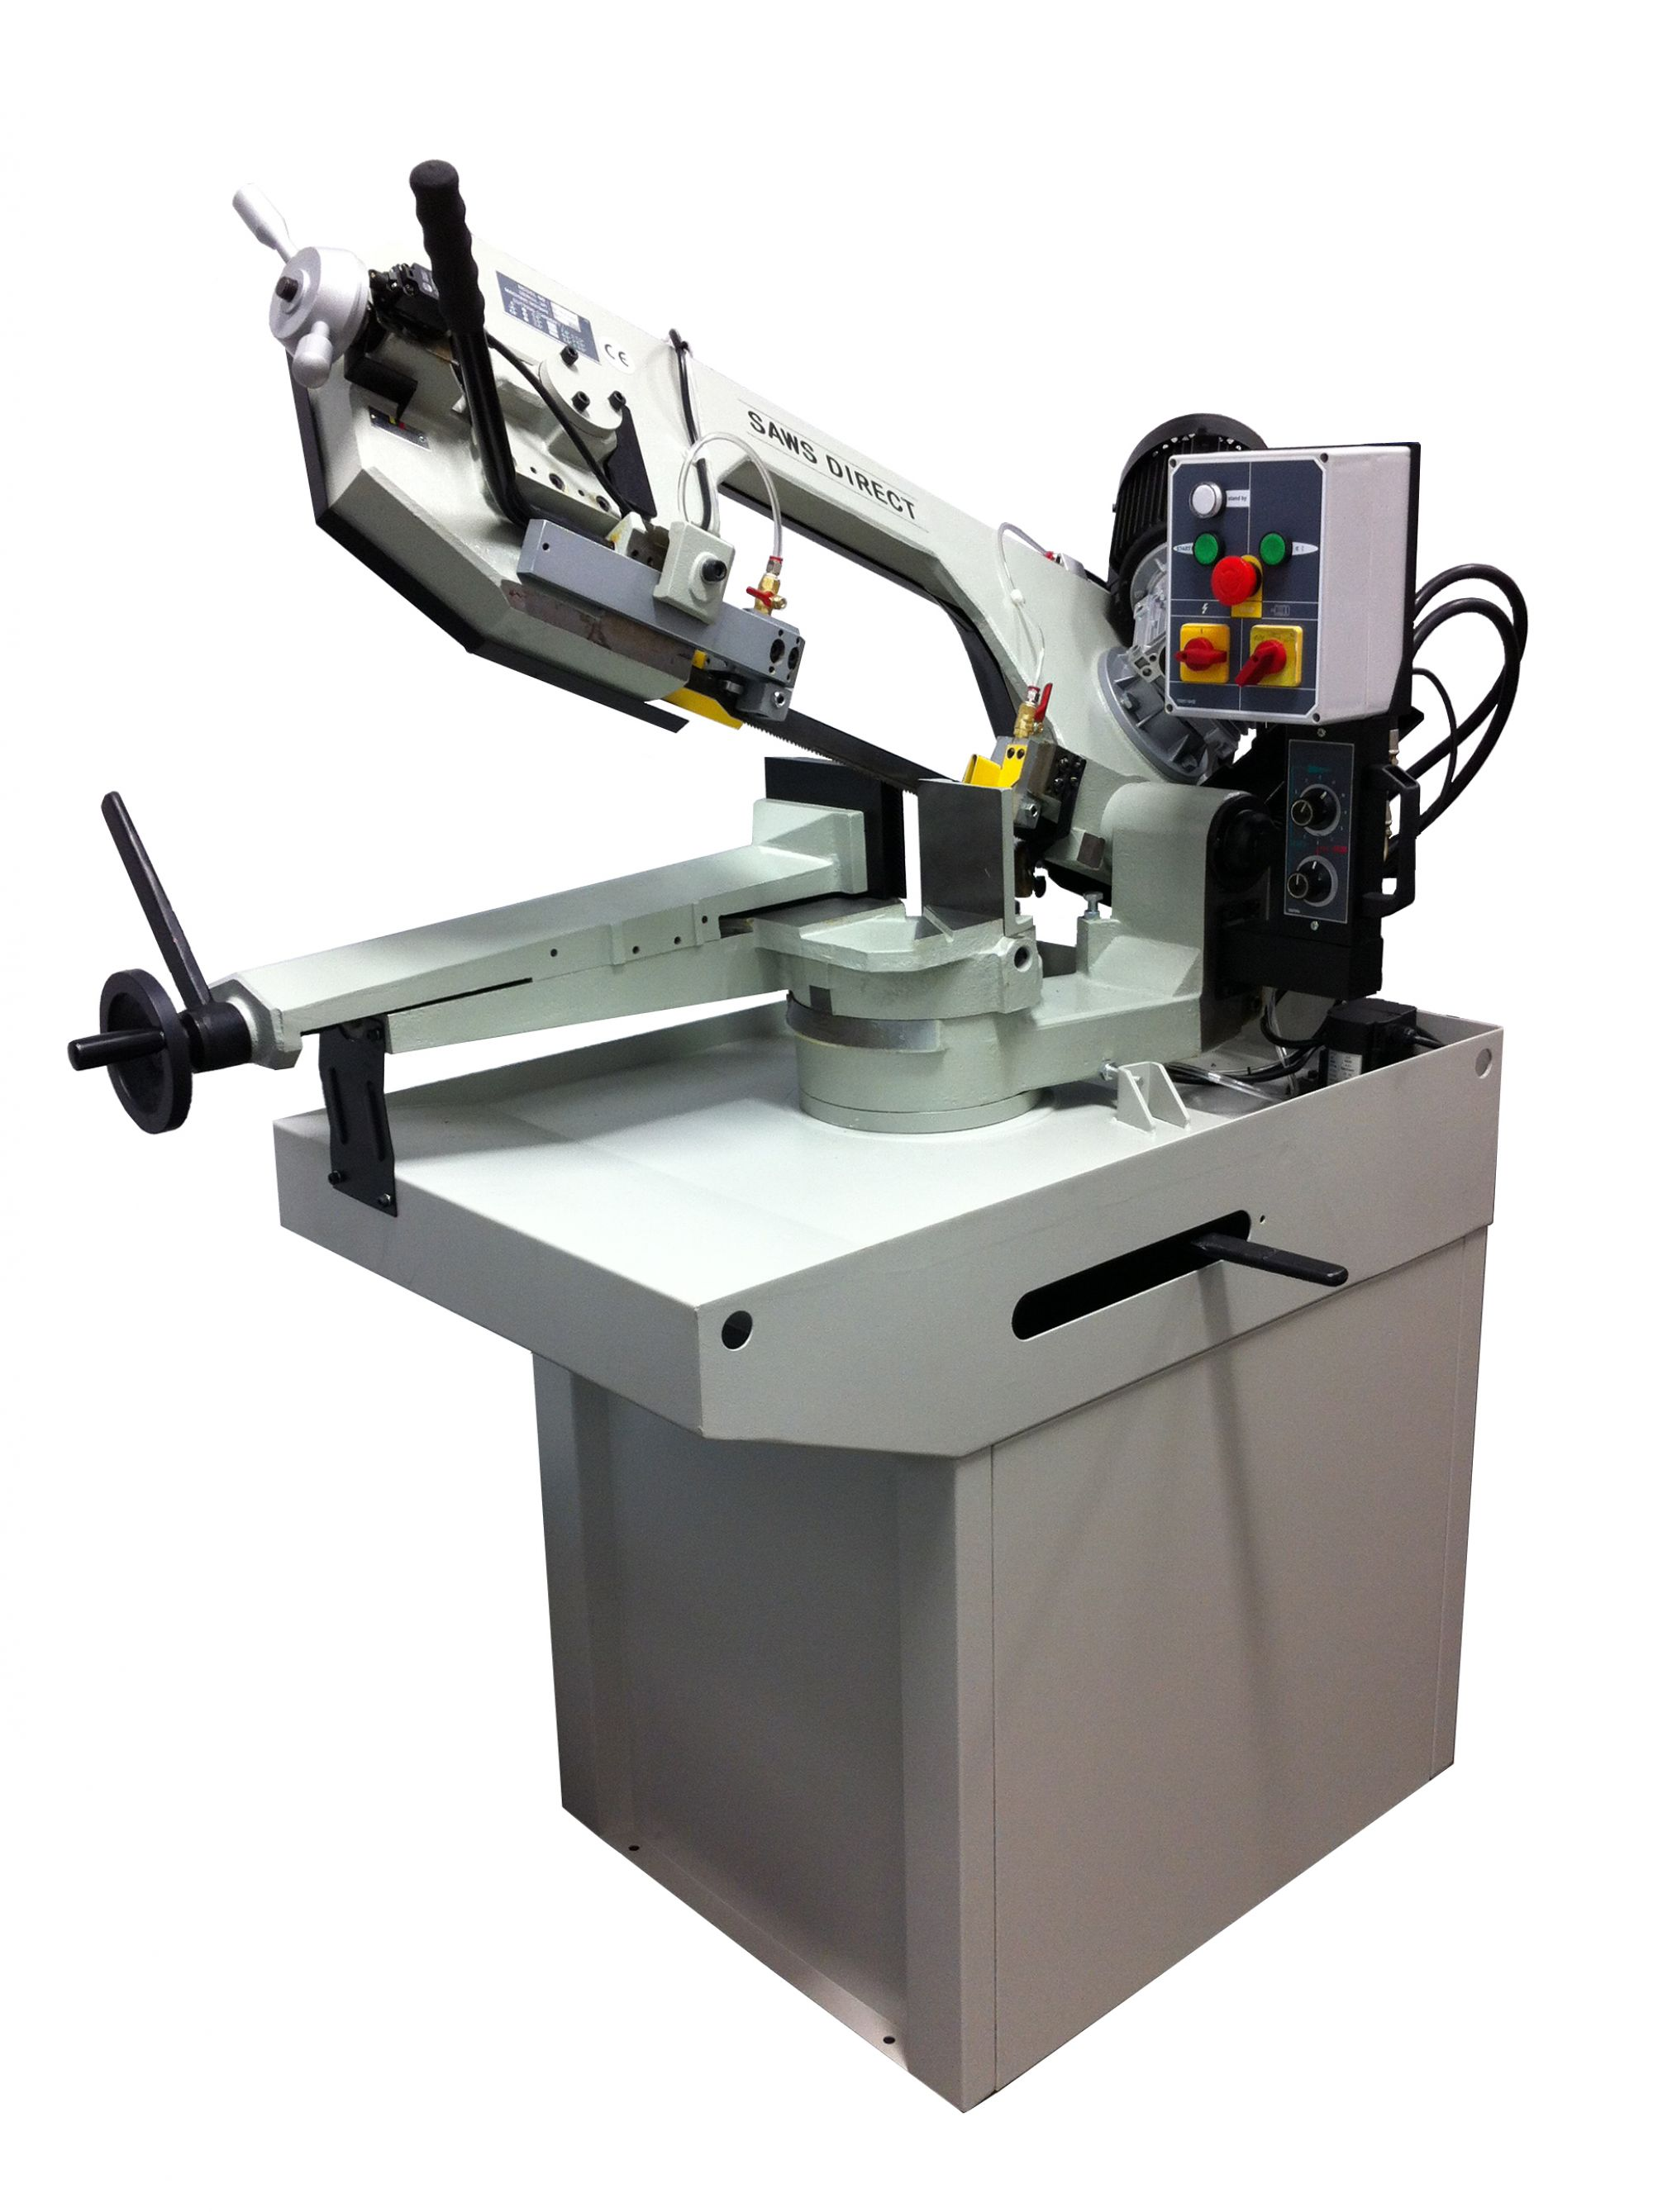 SD-270HB Dual Mode Mitre Bandsaw